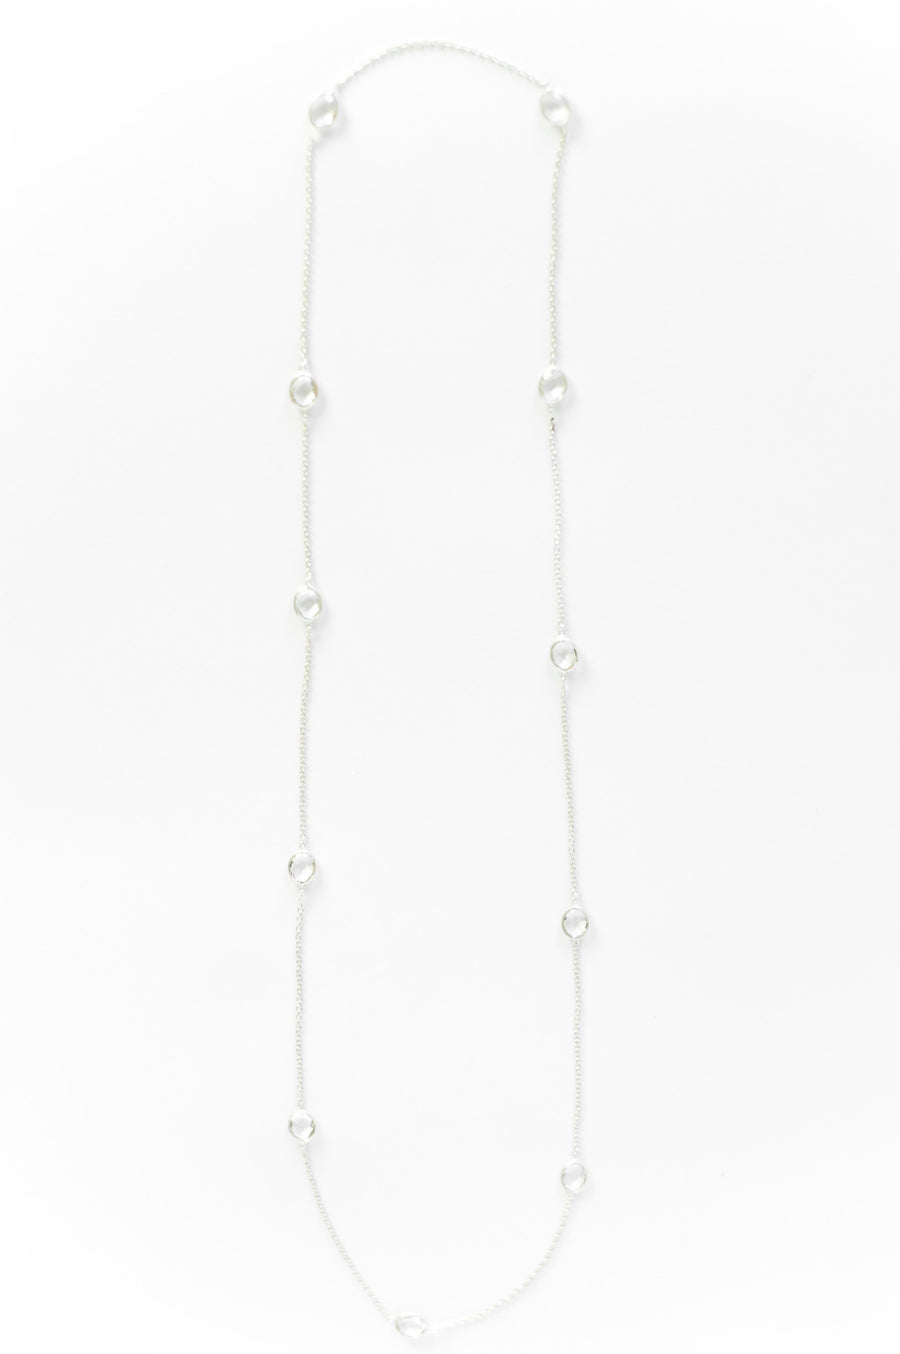 La Jolla Necklace - Sterling Silver